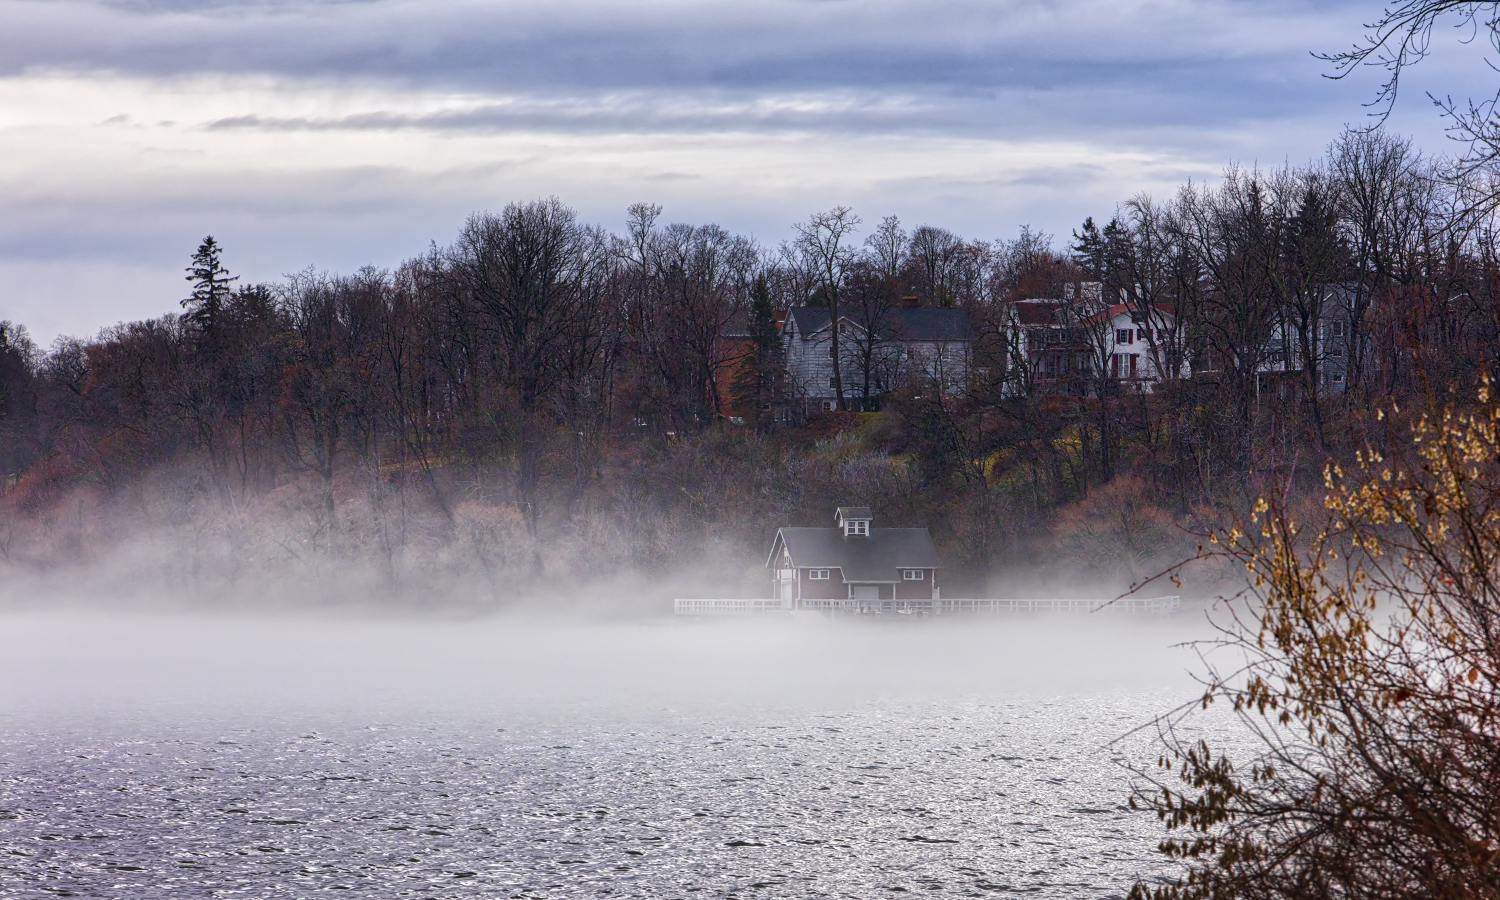 BoatHouse Fog H